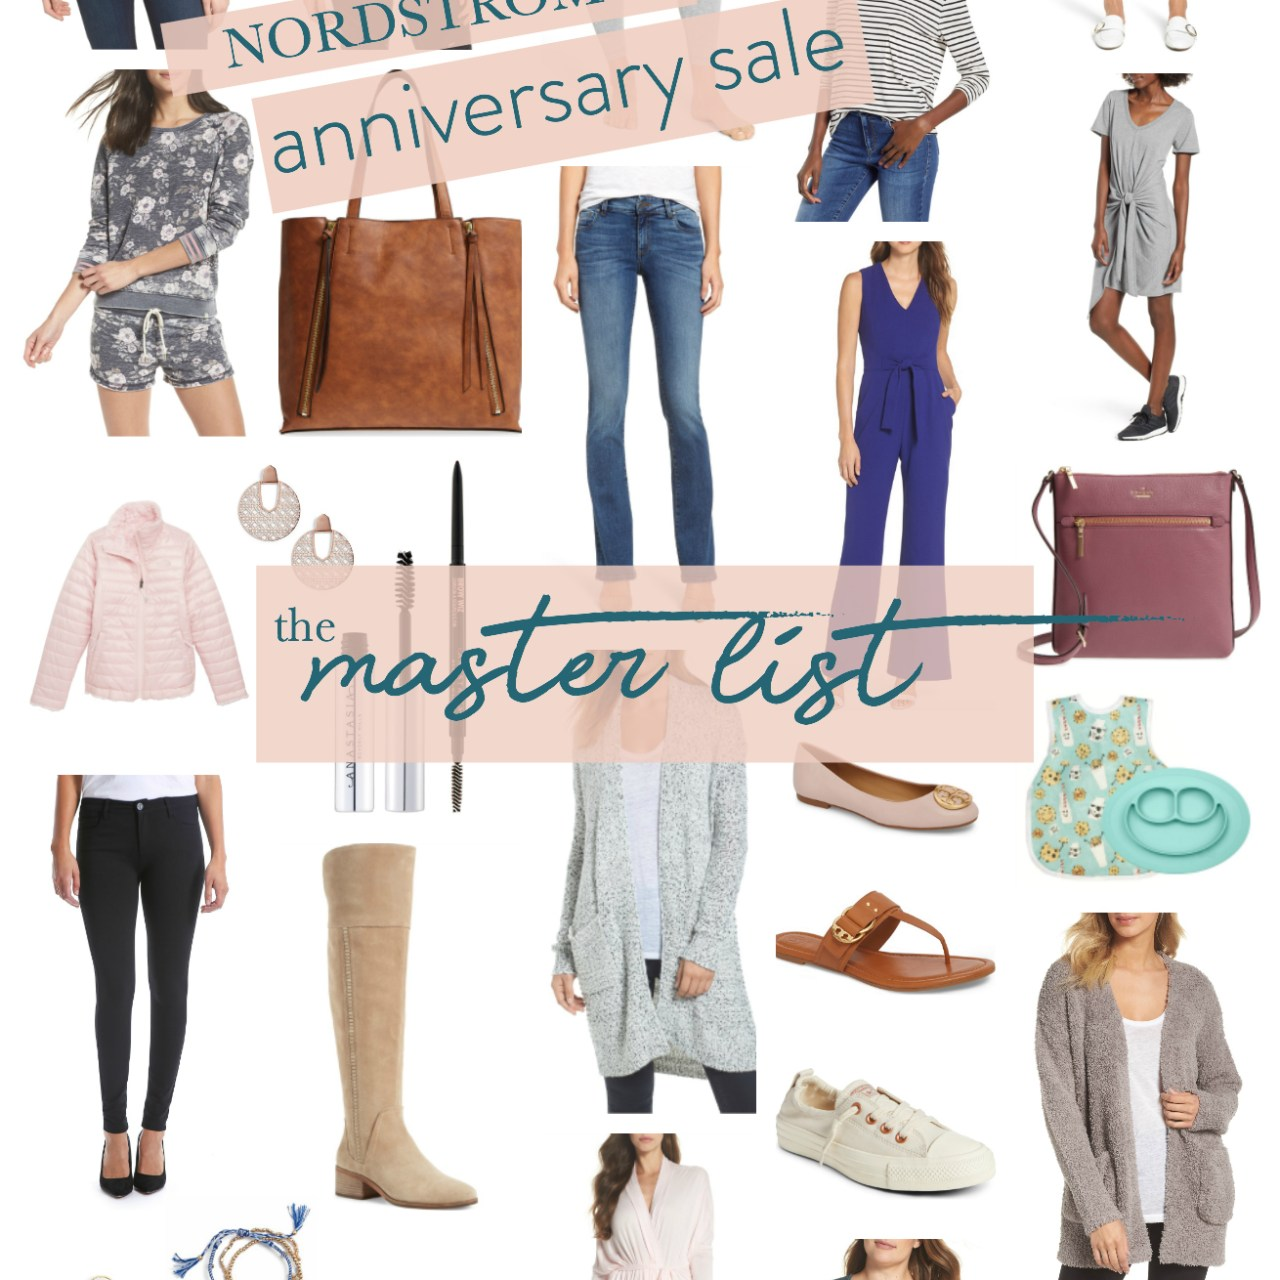 Nordstrom Anniversary Sale: The MASTER List